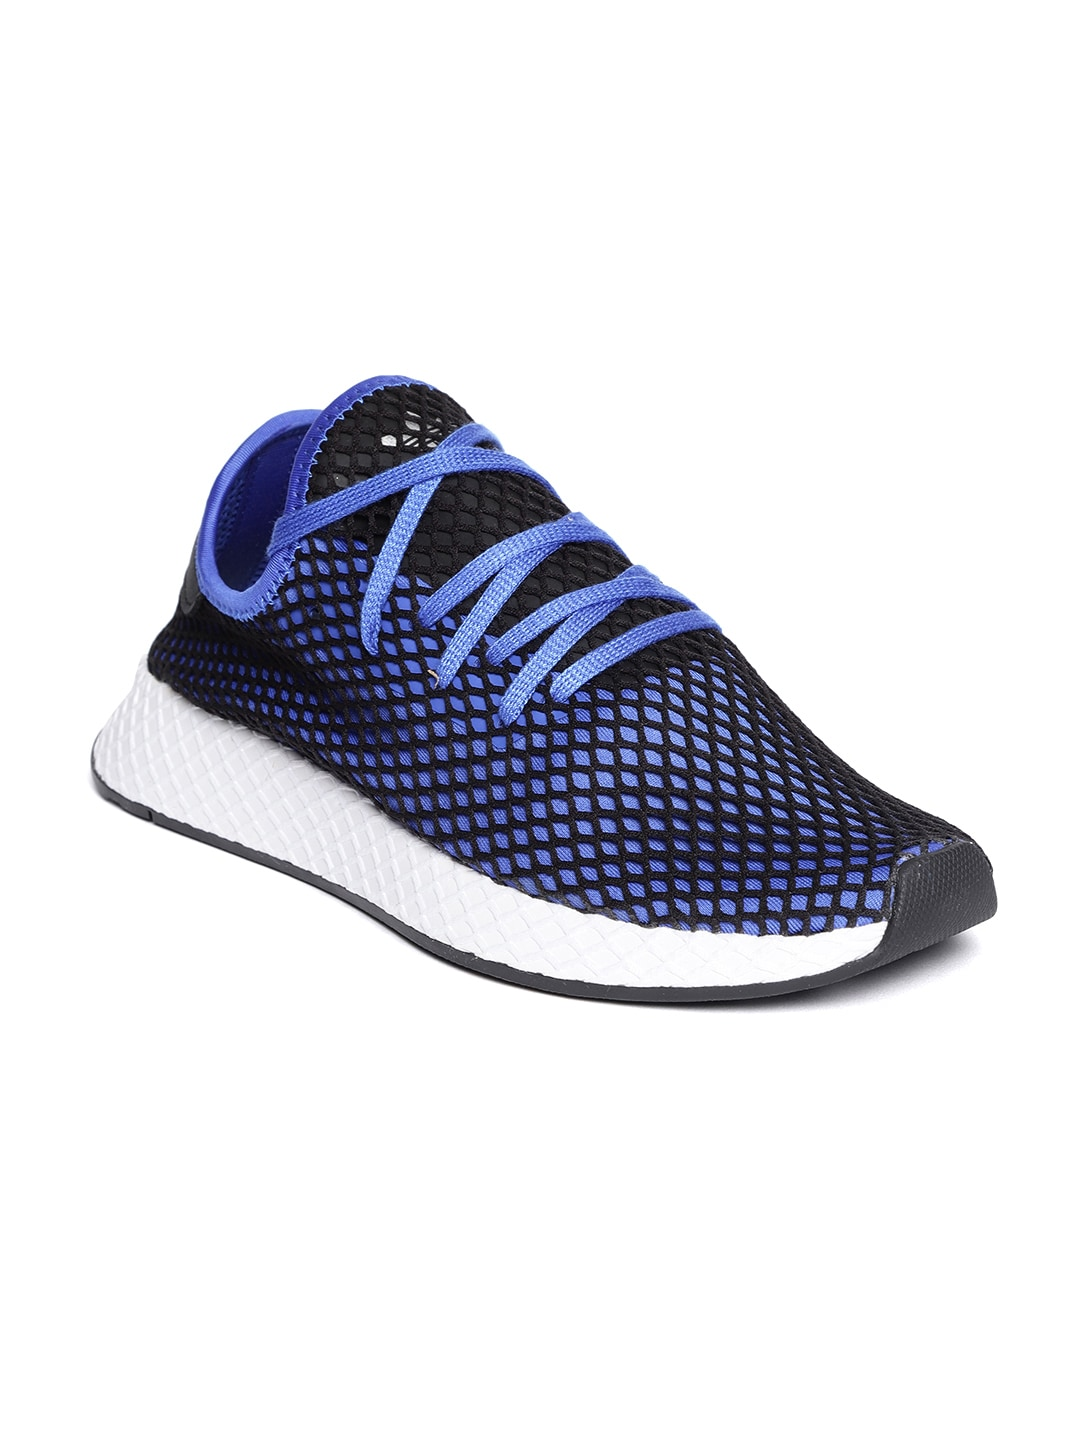 new arrival 1fcd5 ed098 Adidas Deerupt - Buy Adidas Deerupt online in India